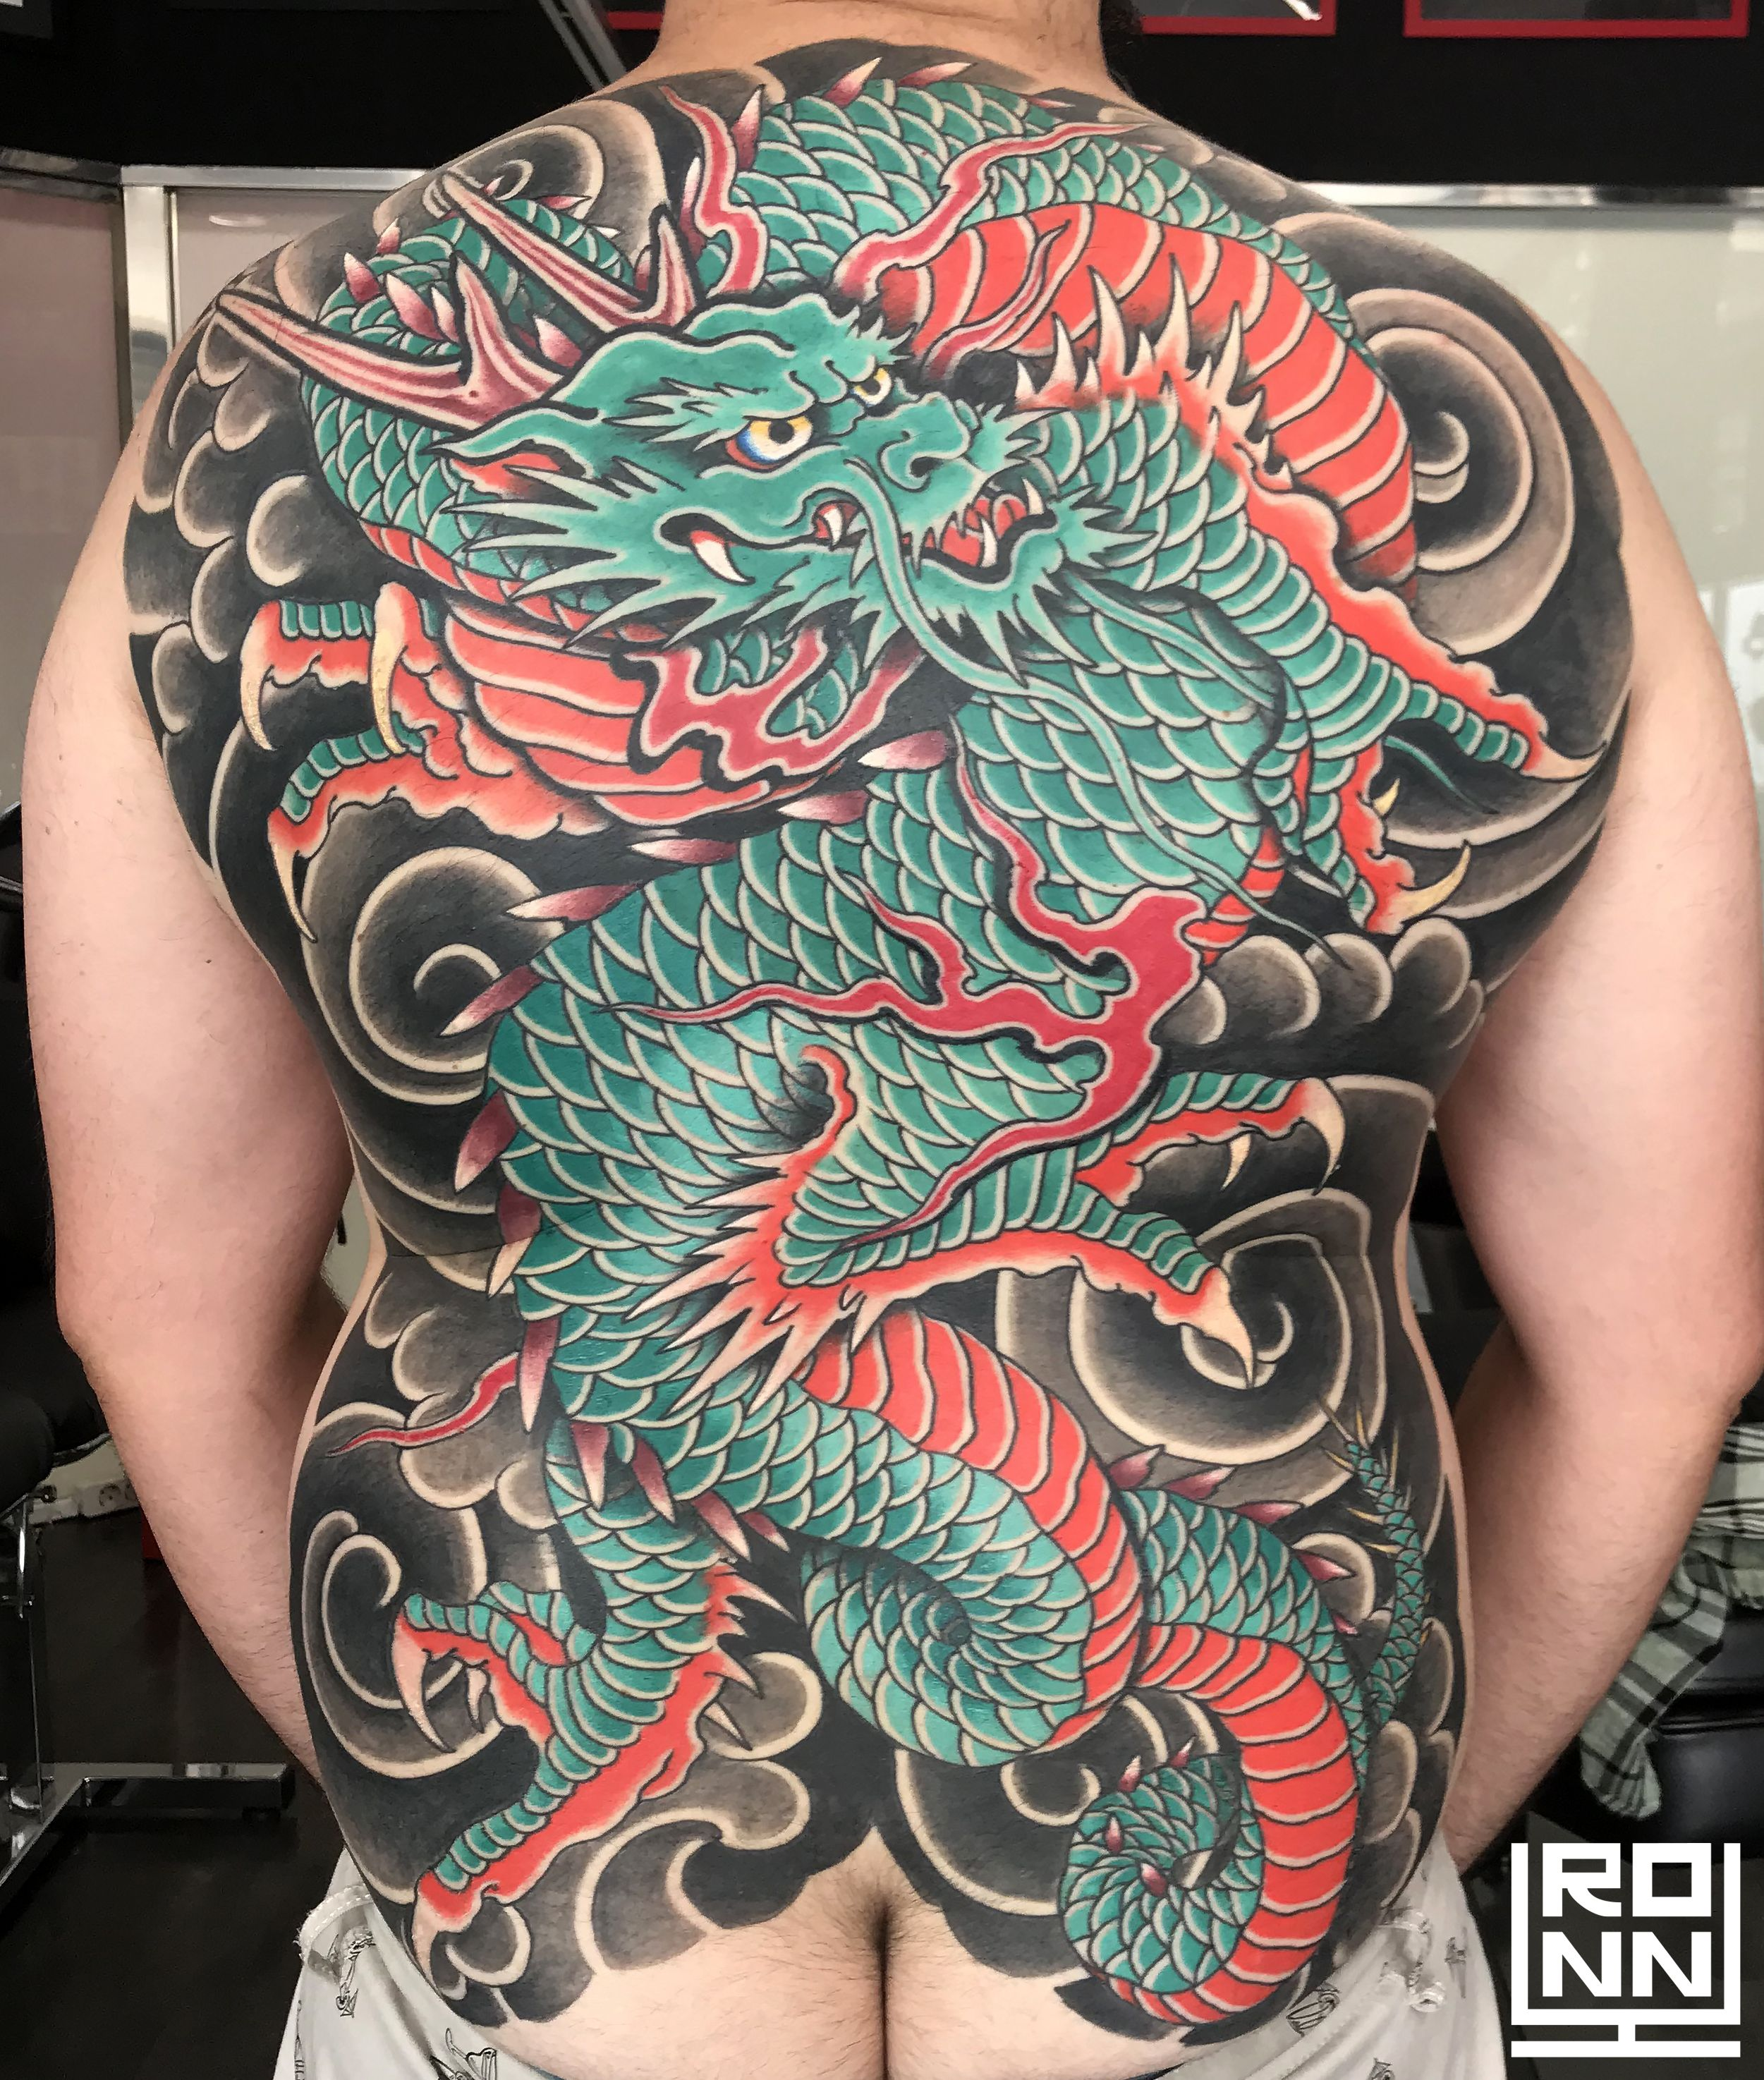 Tatto Japones Tradicional Tattoo Design For example, lions, dragons and demons are combined with flowers, indicating a balance of strength and beauty. tatto japones tradicional tattoo design